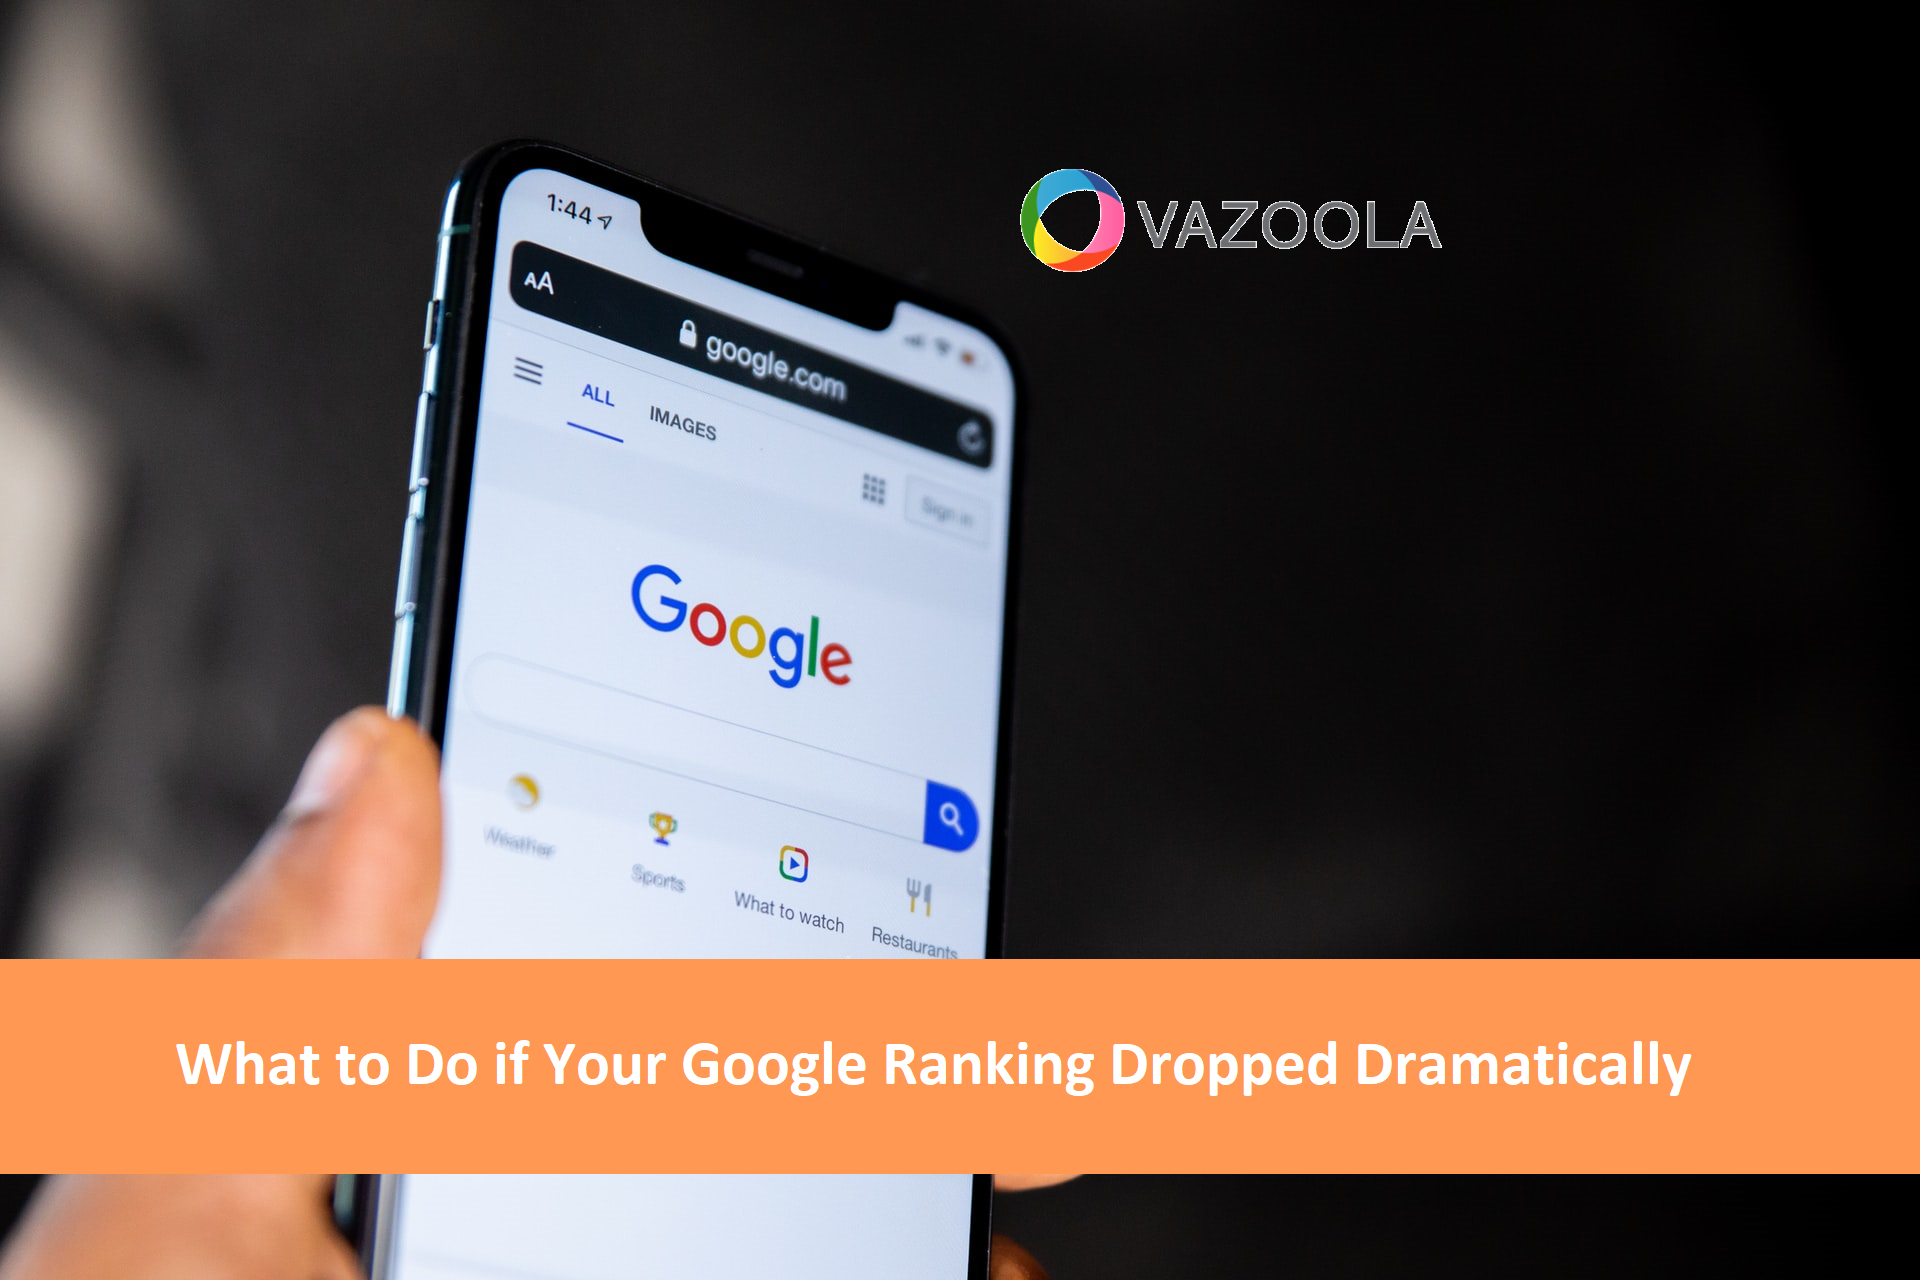 What To Do if Your Google Ranking Dropped Dramatically